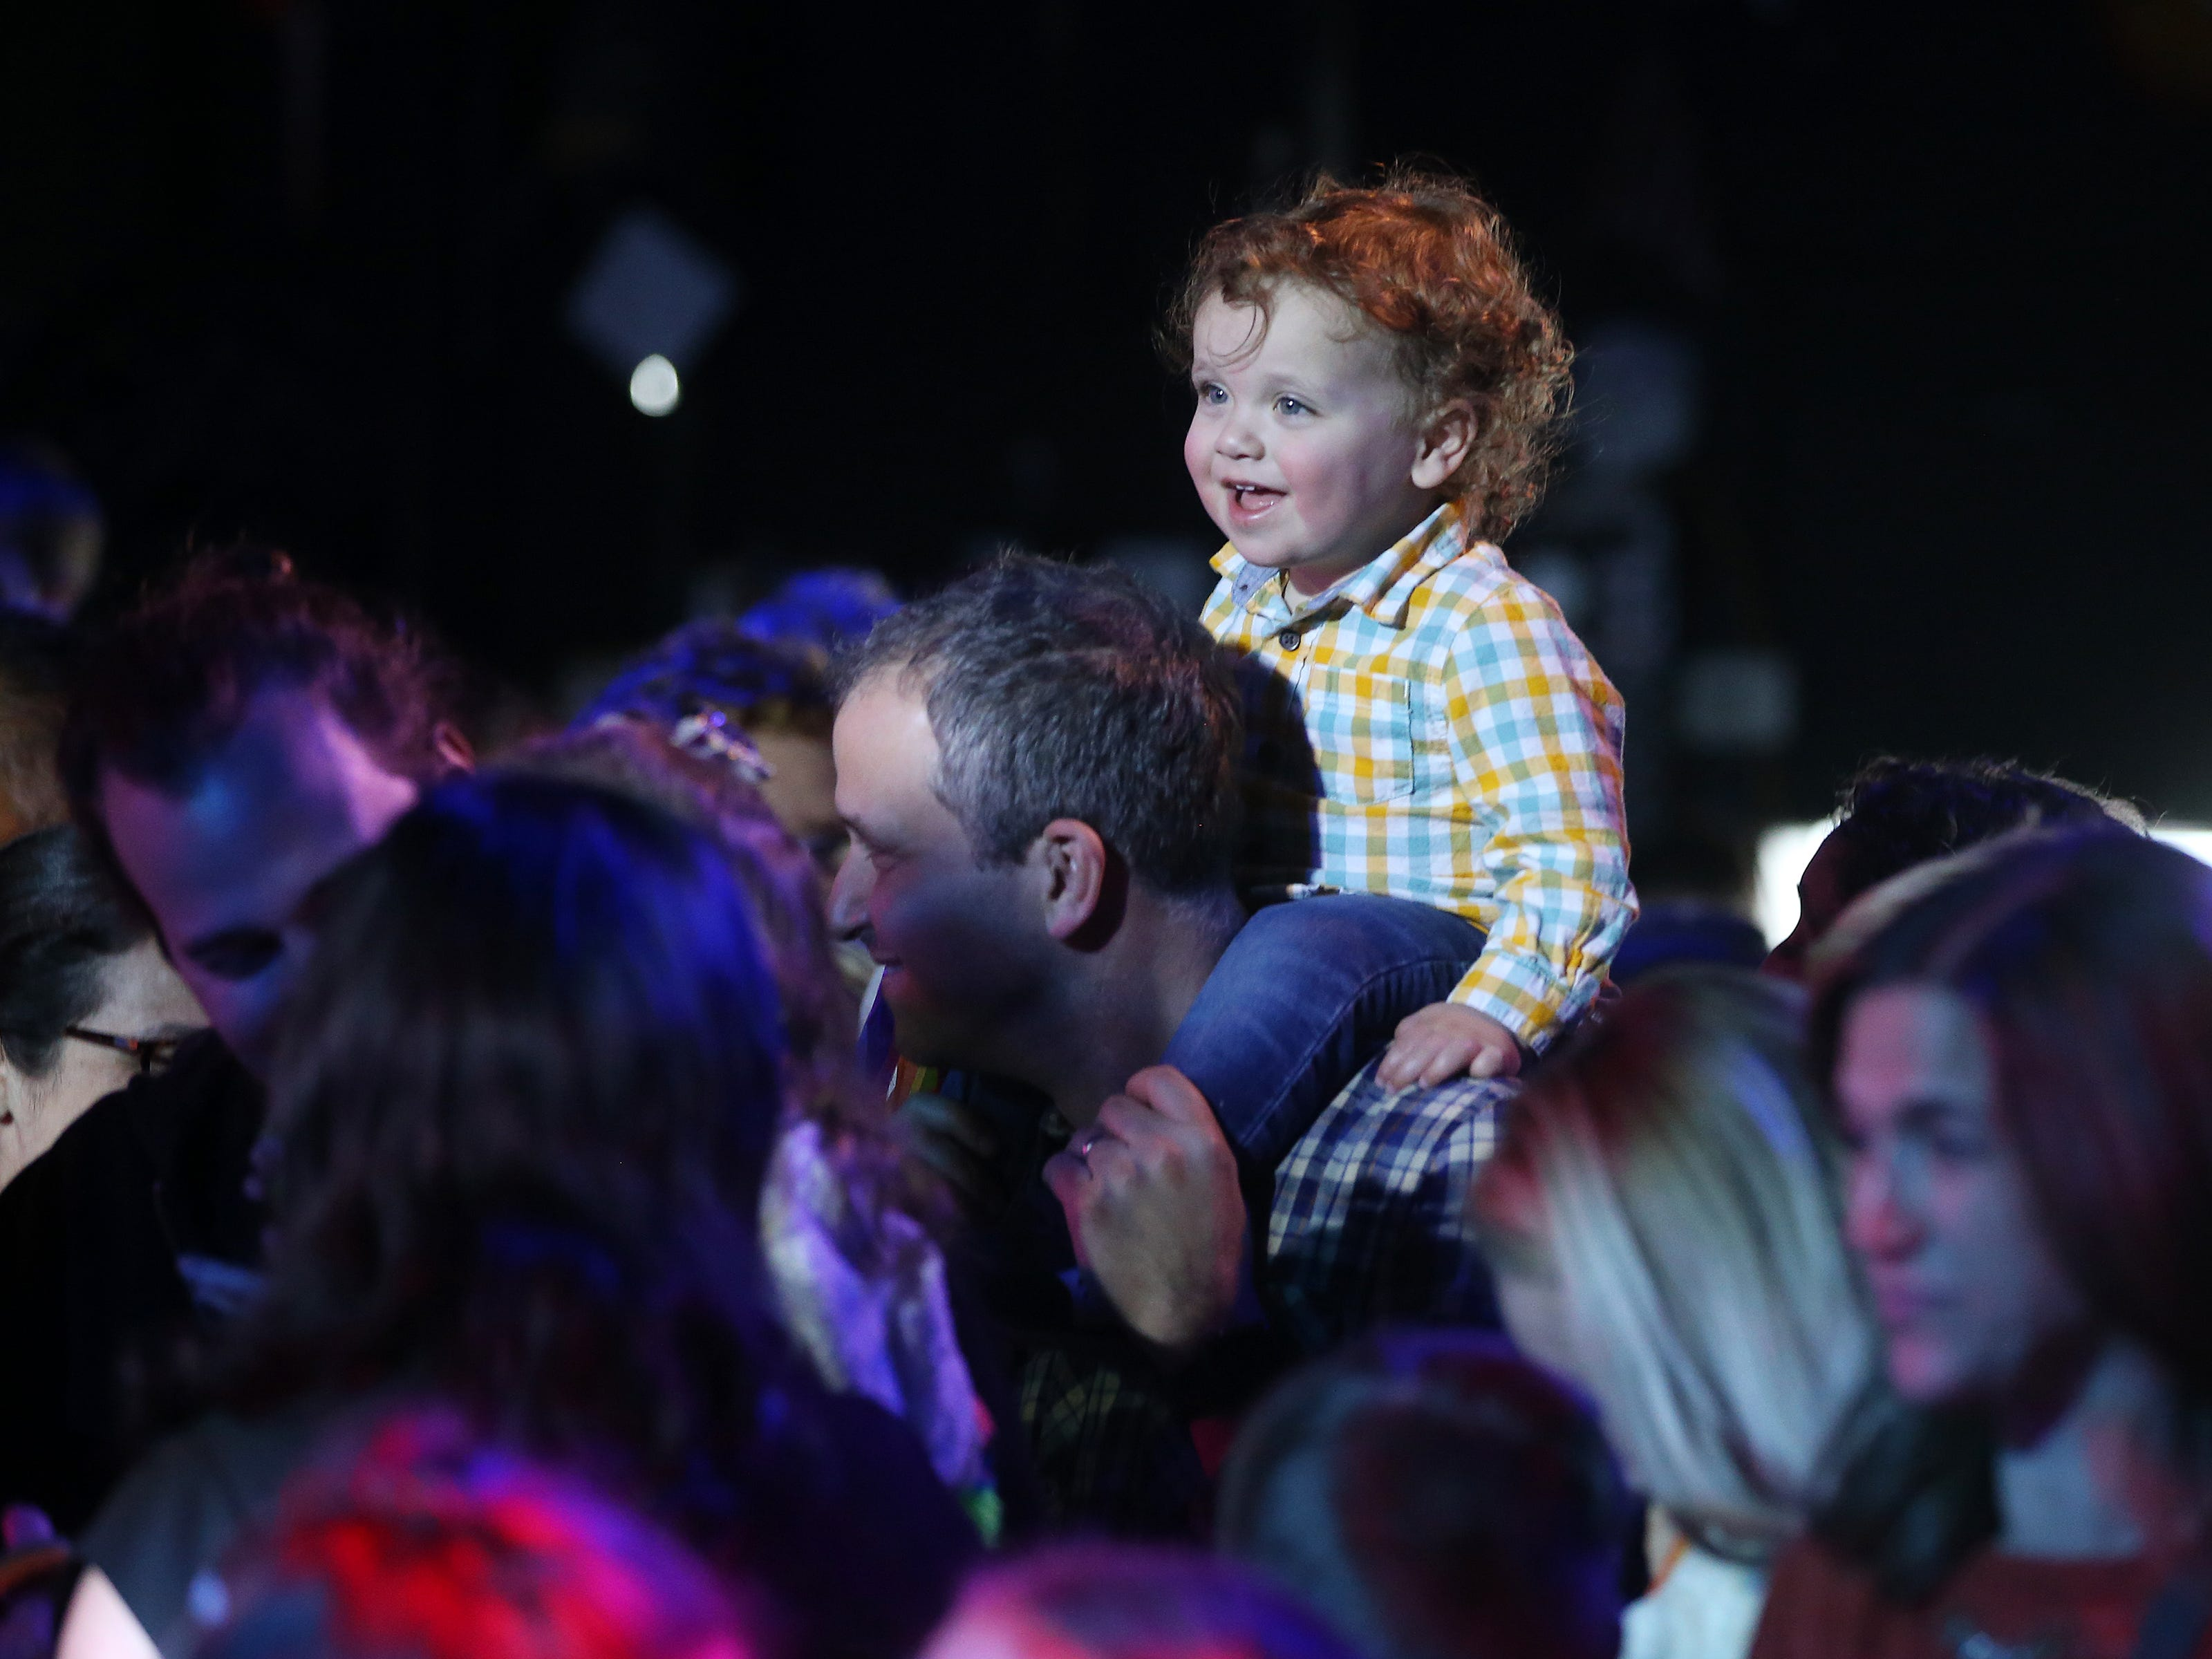 Scott Warren of Jersey City dances with his 2-year-old son, Ezra, as the Rock and Roll Playhouse presents the Music of Bruce Springsteen for Kids at the Stone Pony during the Asbury Park Music and Film Festival in Asbury Park, NJ Sunday, April 28, 2019.  #APMFF